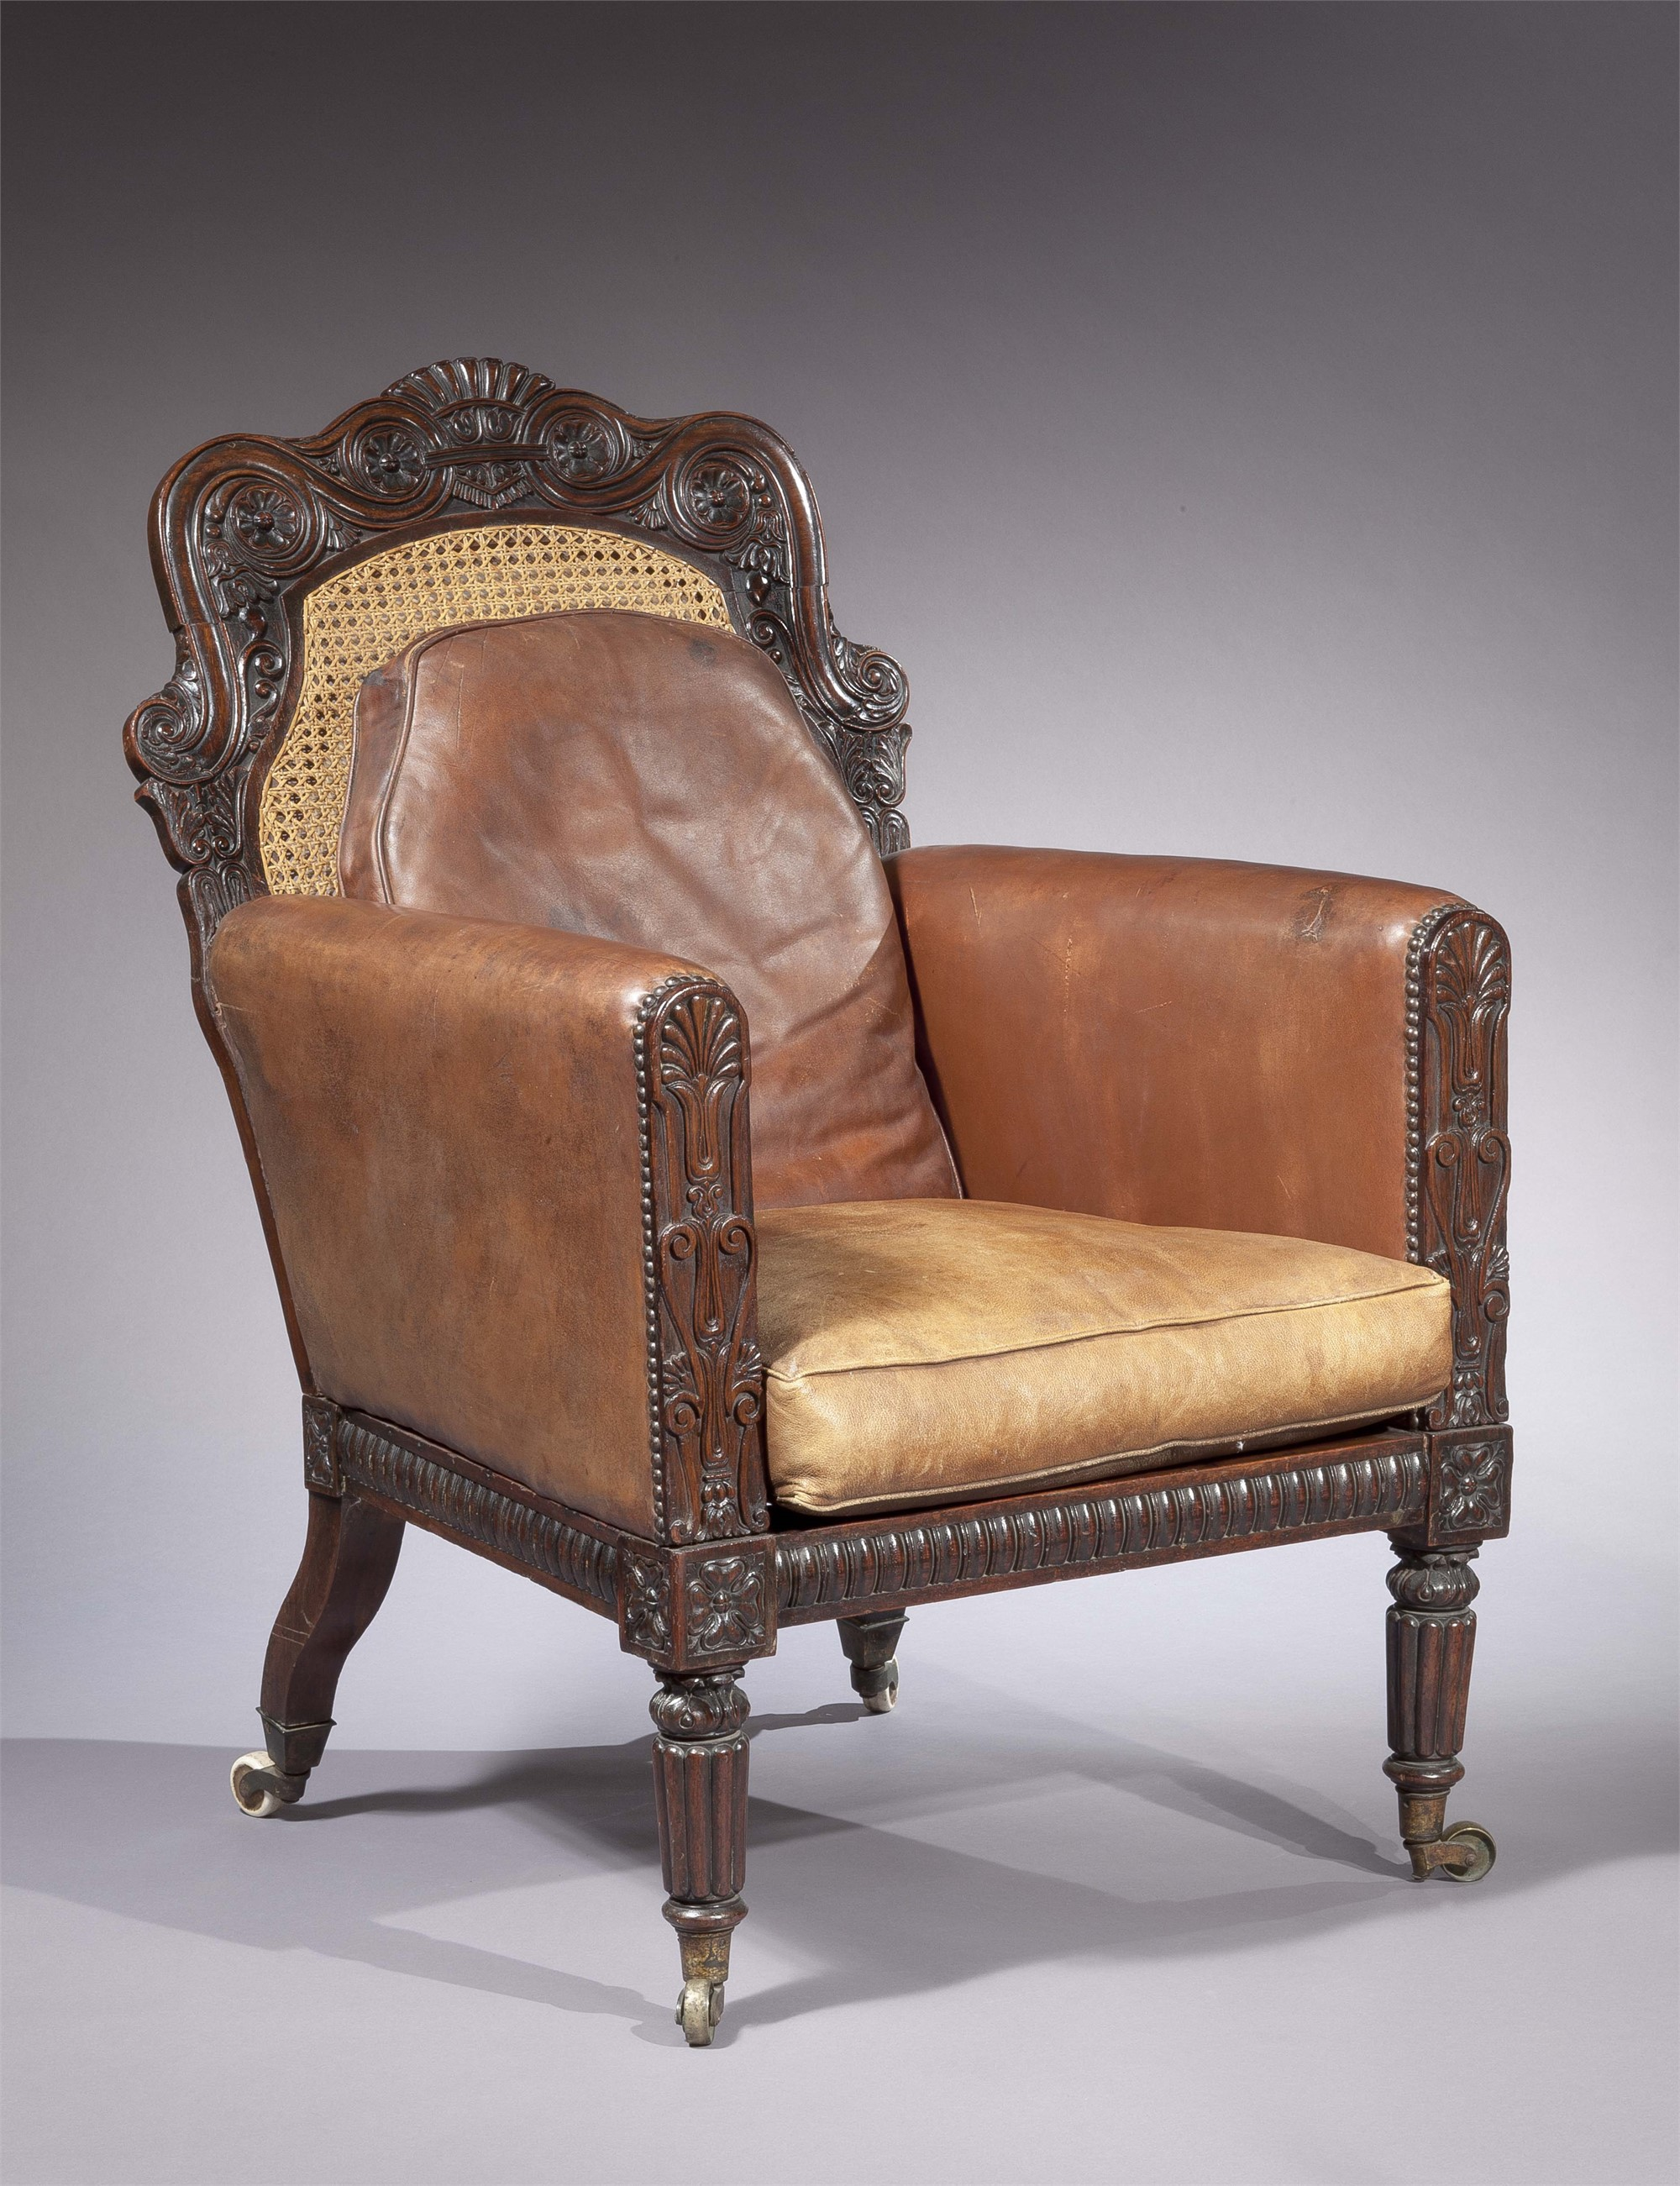 ANGLO-INDIAN ROSEWOOD, CANED, LEATHER-UPHOLSTERED ARMCHAIR